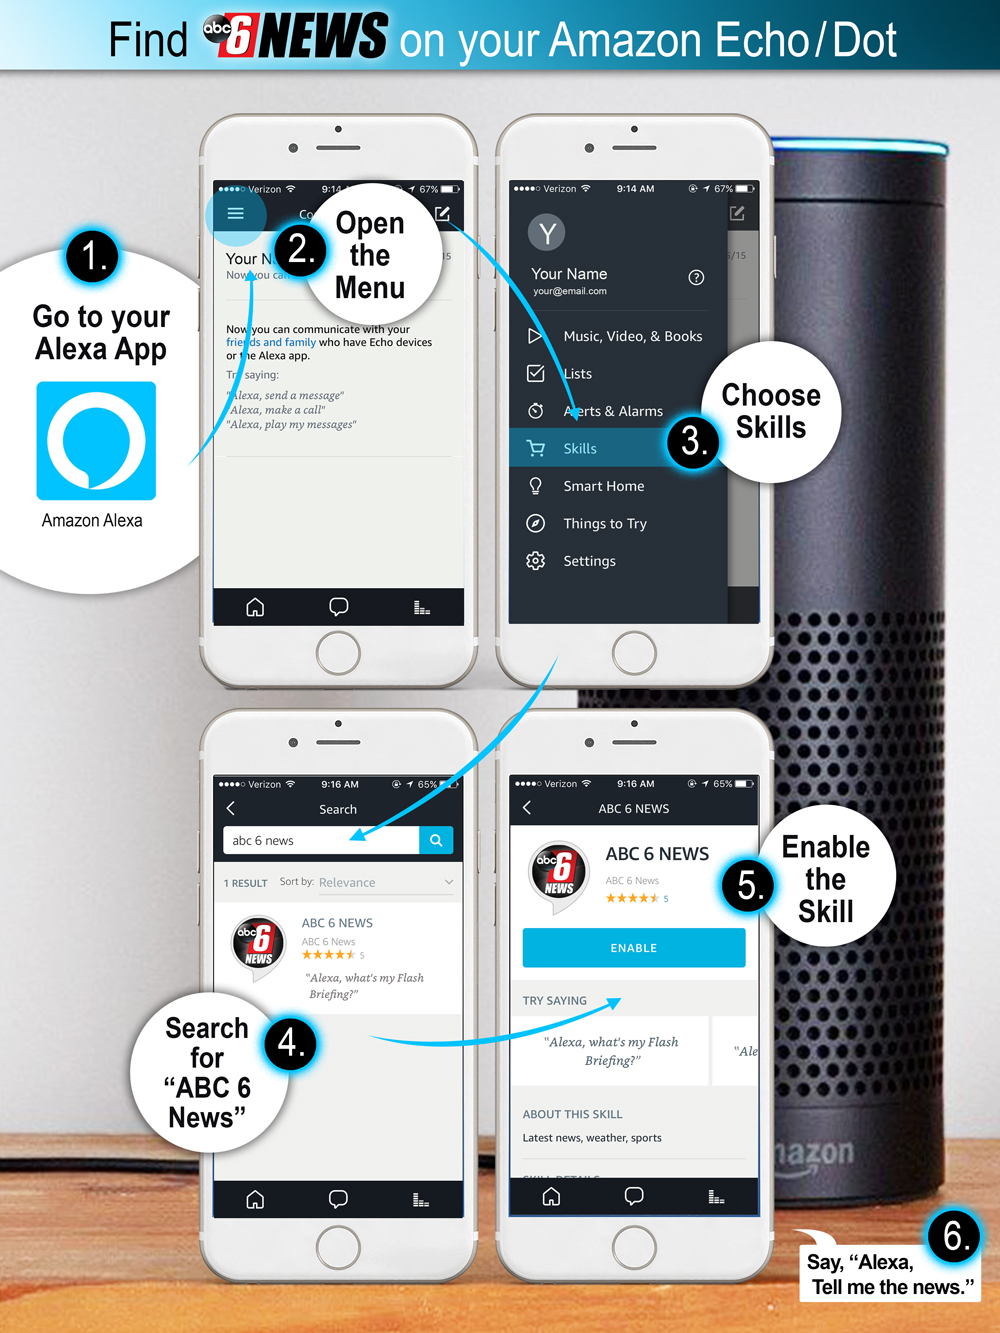 Amazon Alexa Instructions